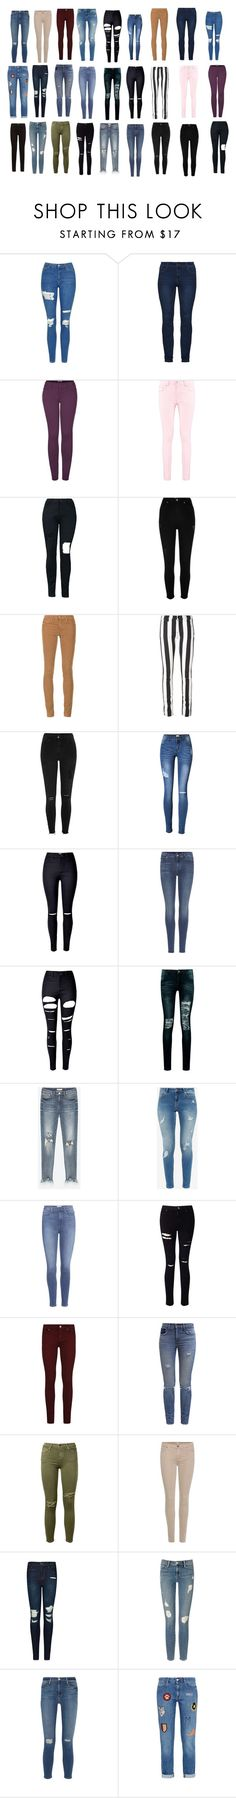 """Geen titel #1713"" by mariemx ❤ liked on Polyvore featuring Topshop, 2LUV, Boohoo, River Island, AG Adriano Goldschmied, Off-White, 7 For All Mankind, WithChic, Ted Baker and Paige Denim"